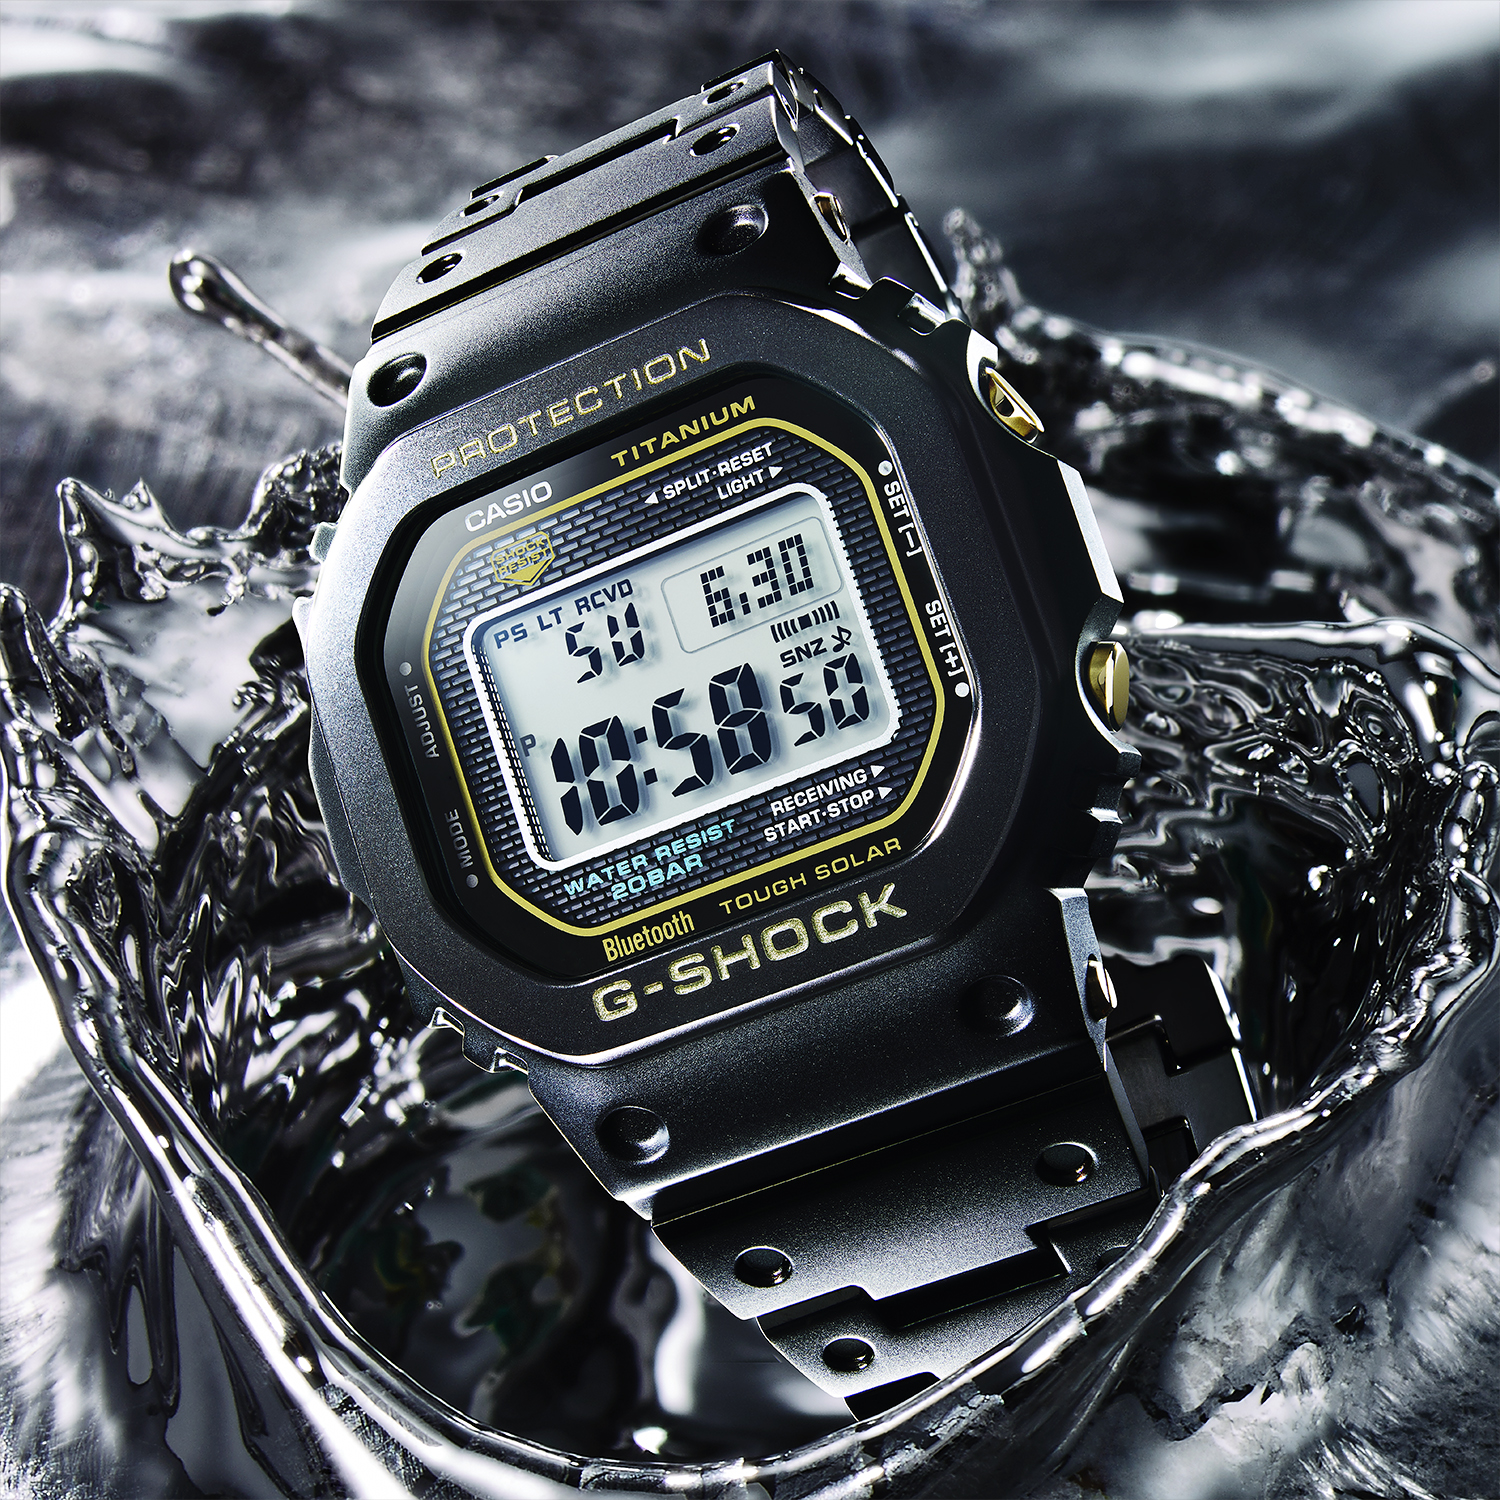 G-SHOCK Full Metal Series Adds Titanium with New GMWB5000TB | WatchTime - USA's No.1 Watch Magazine